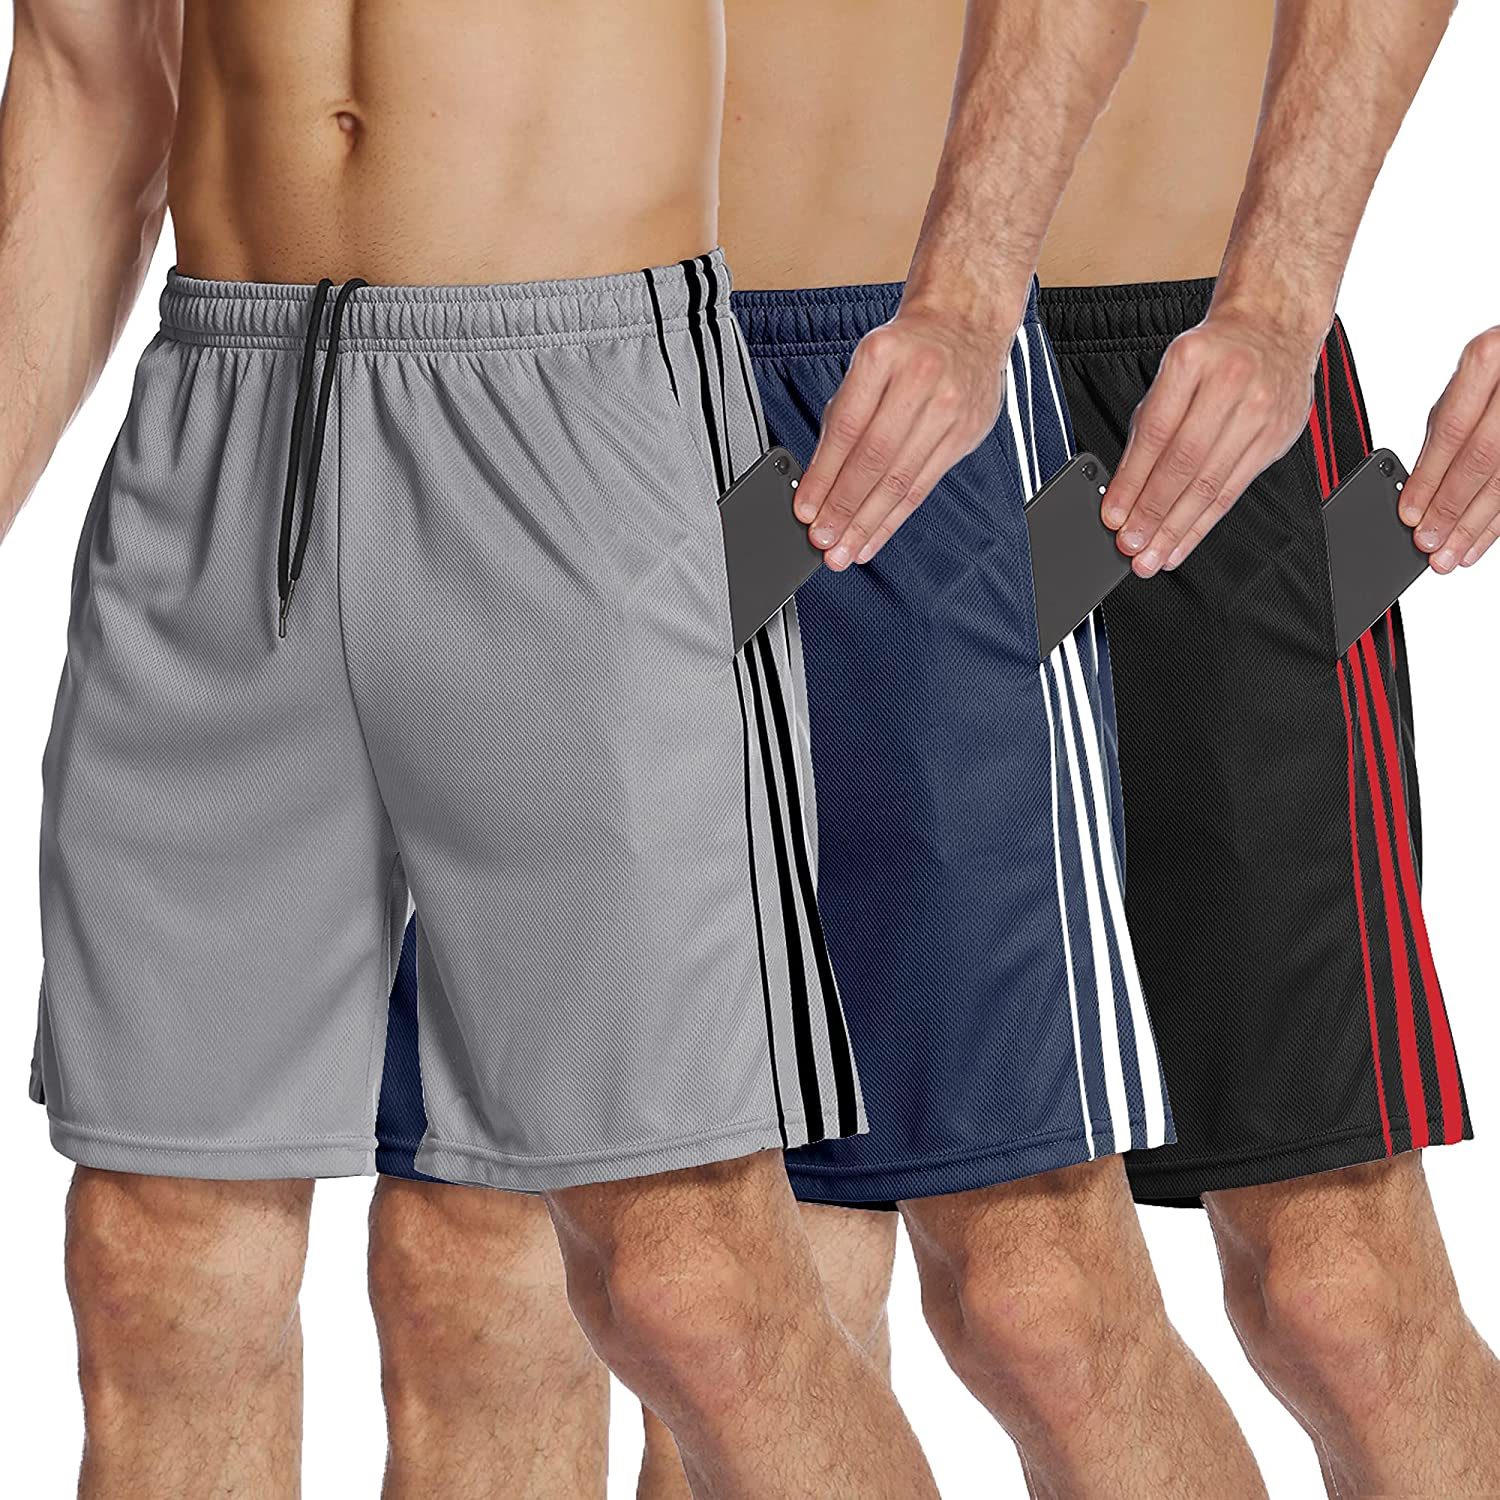 COOFANDY Men's 3 Pack Athletic Quick Shorts Dry New products world's highest quality popular Performance Max 45% OFF Mesh